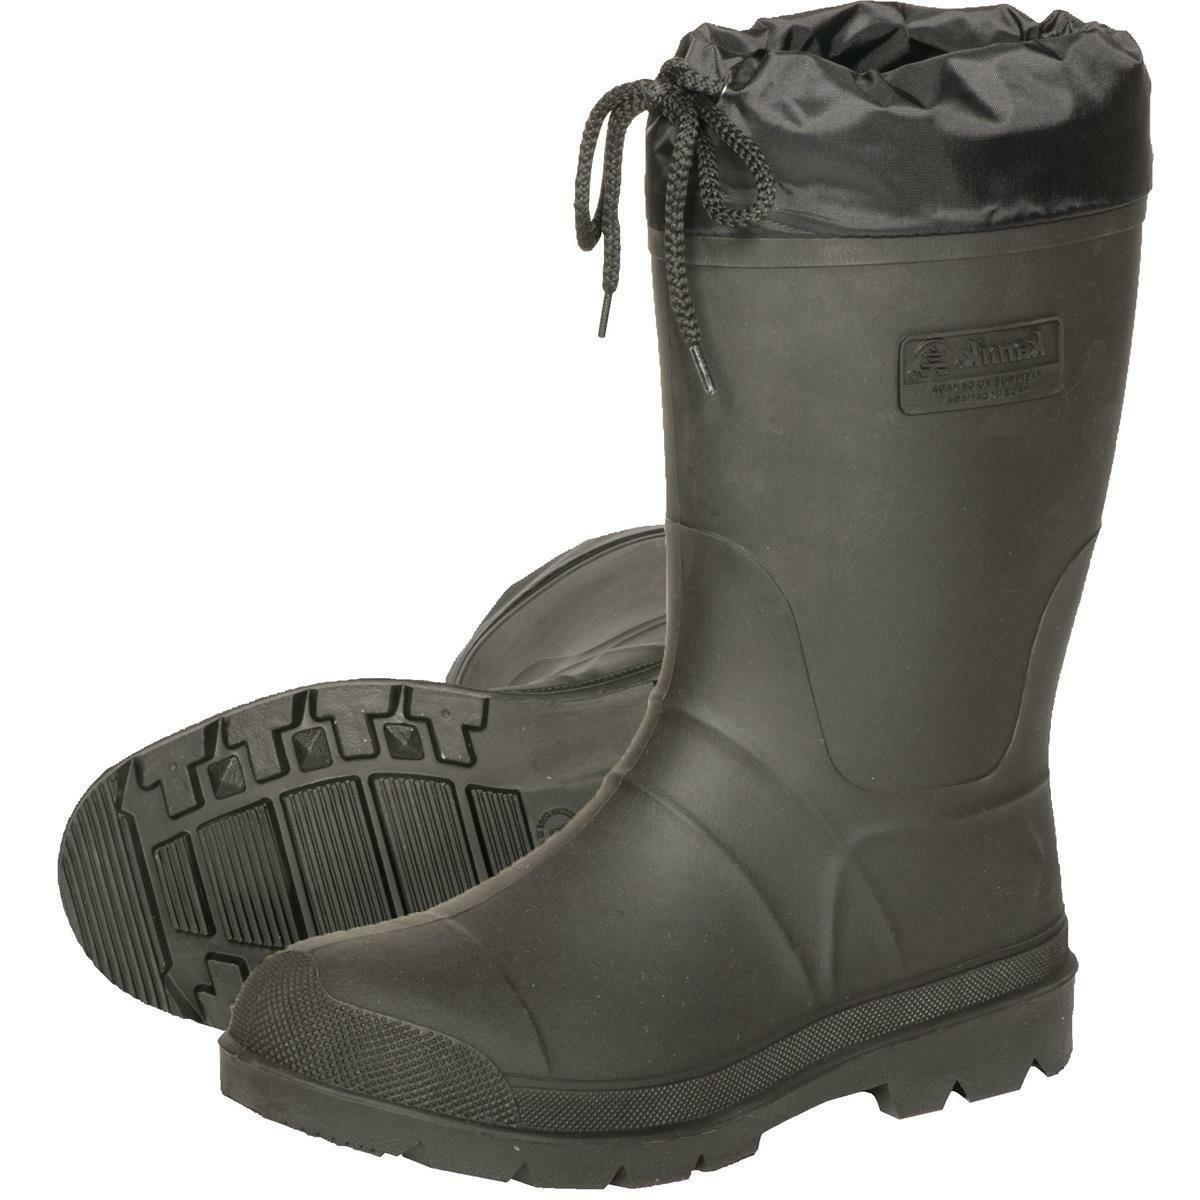 Kamik Men's Hunter Insulated Rubber Boot BLACK SIZE 12